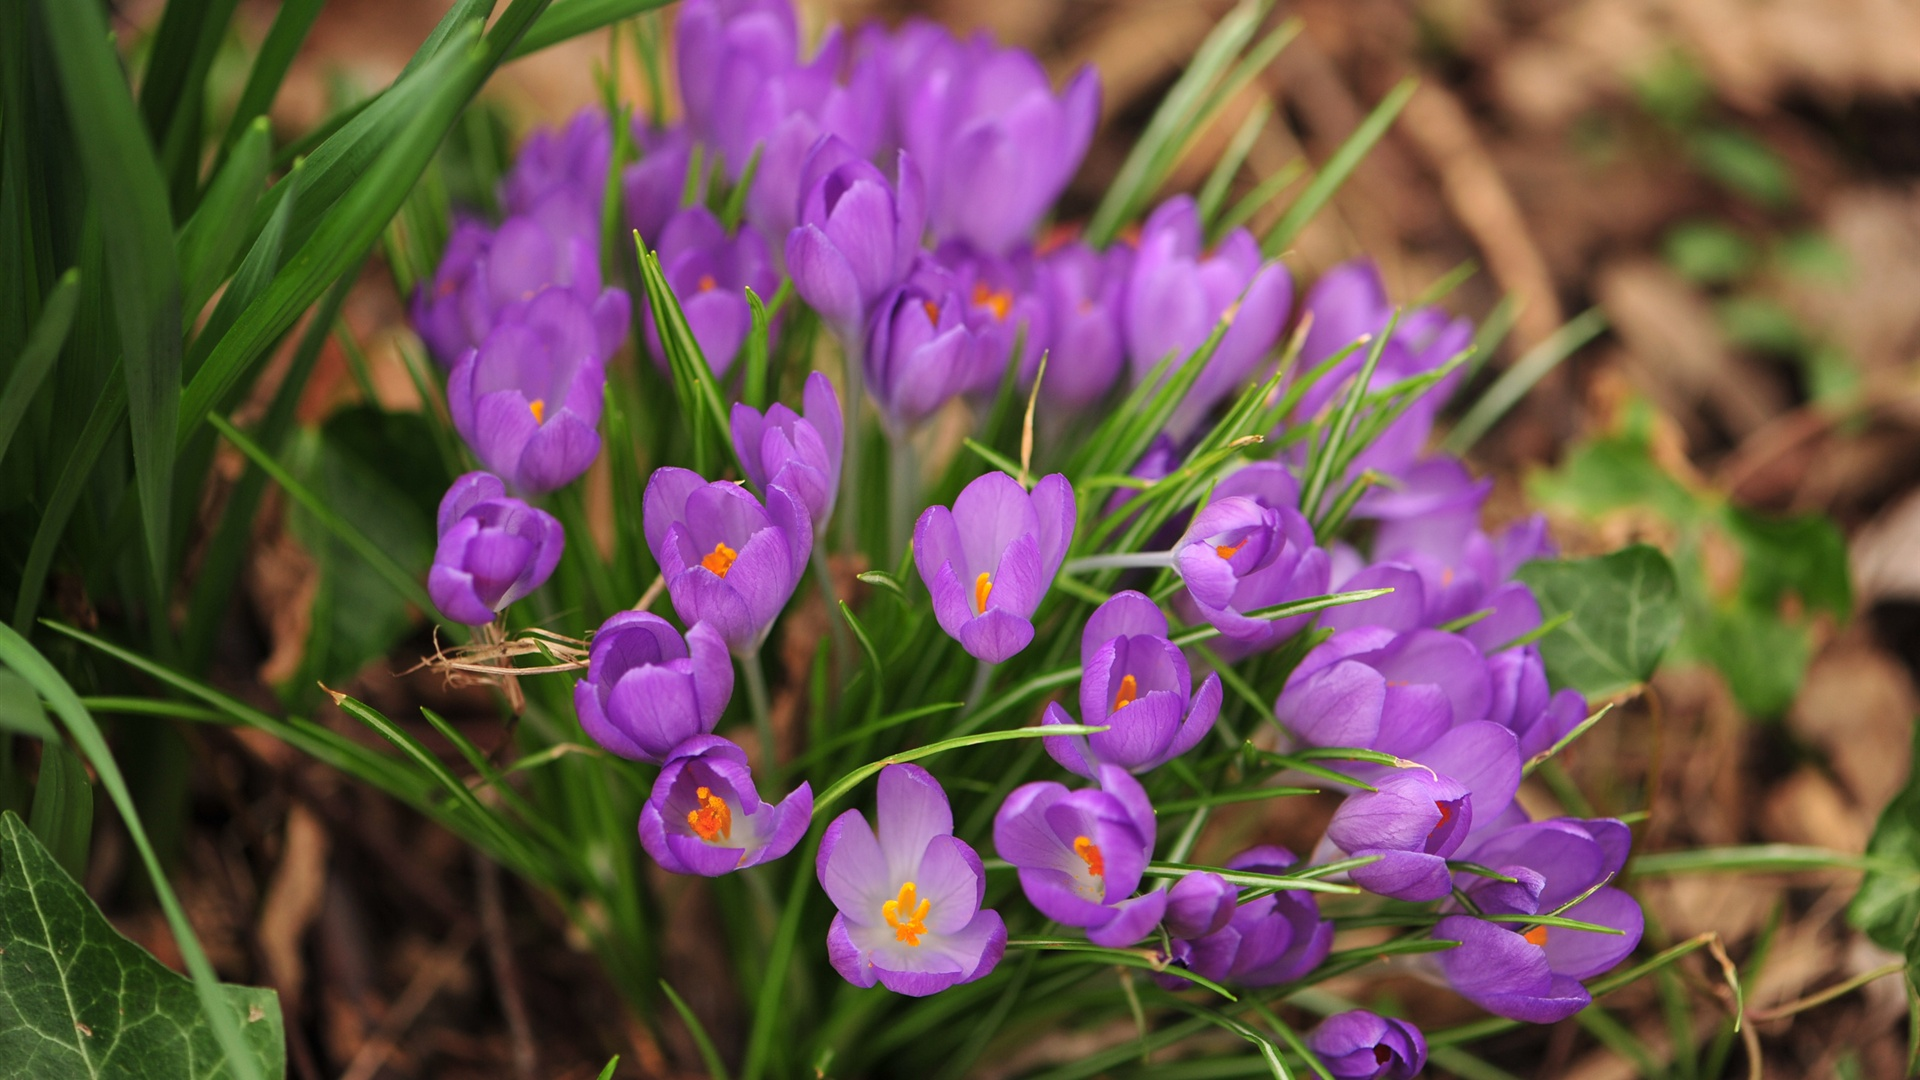 Nature Spring Purple Flowers Close up   High Definition Wallpapers 1920x1080